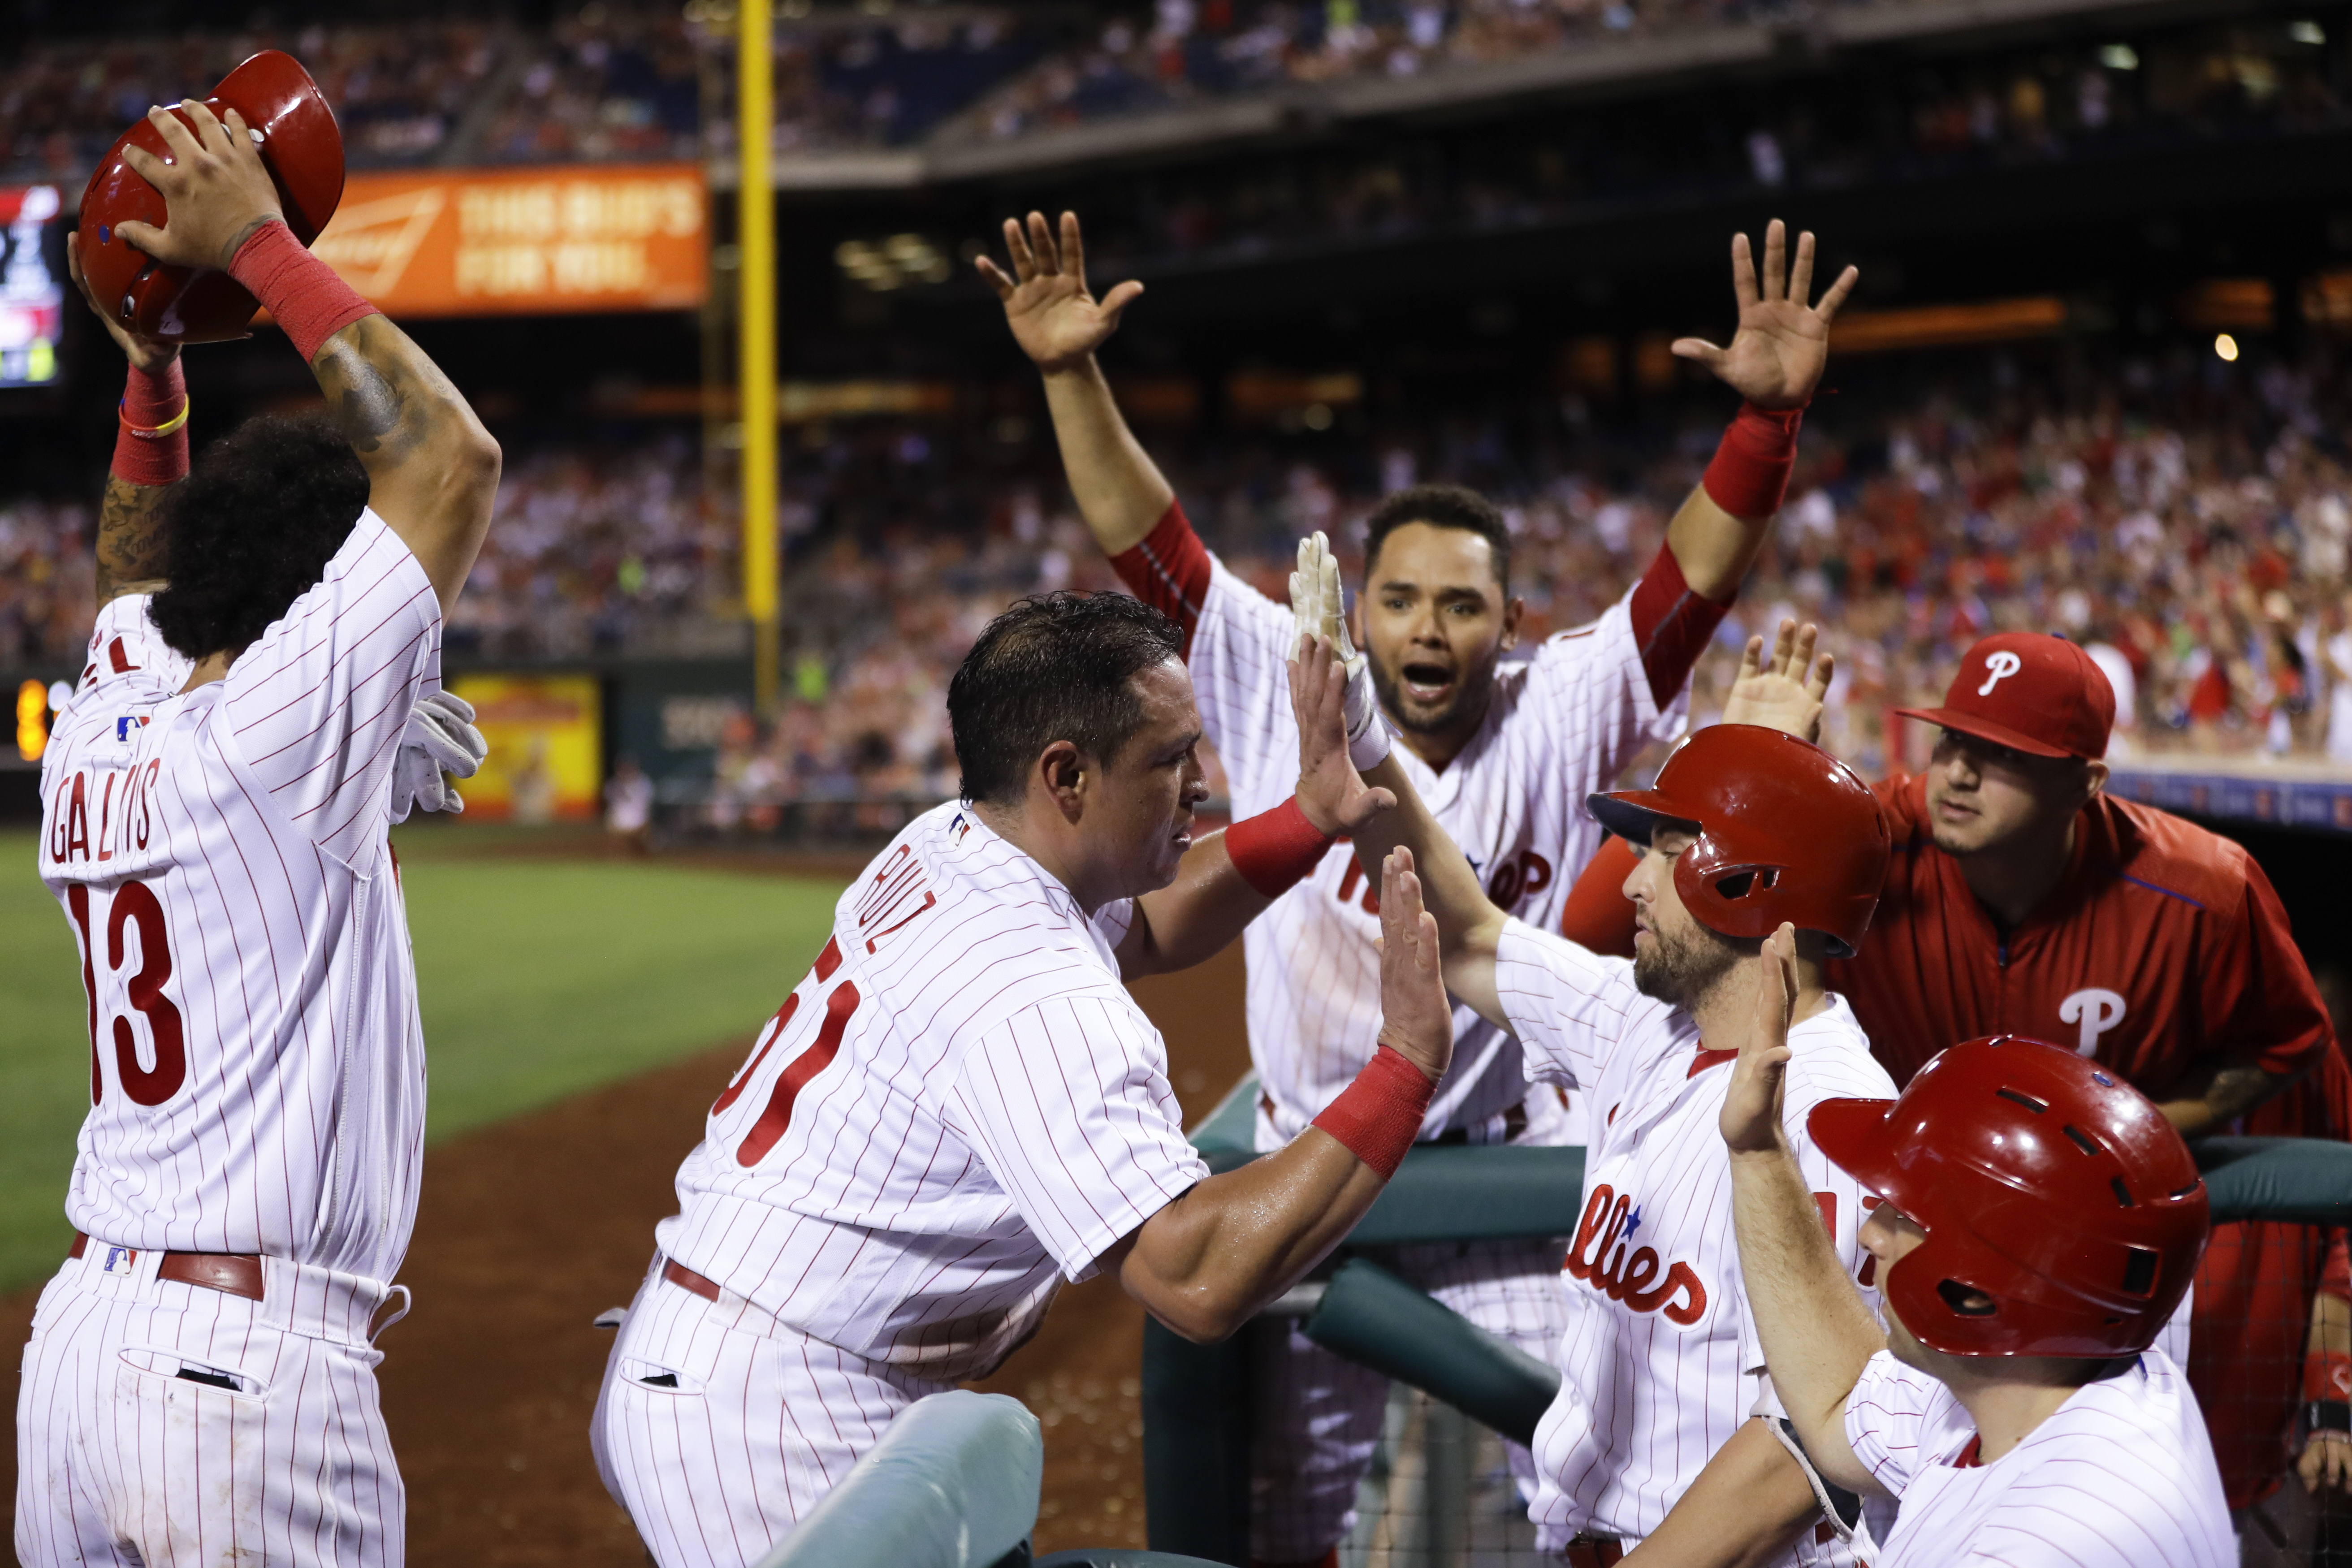 Philadelphia Phillies' Carlos Ruiz, center, celebrates with teammates after scoring on a wild pitch by New York Mets relief pitcher Erik Goeddel during the eighth inning of a baseball game, Saturday, July 16, 2016, in Philadelphia. Philadelphia won 4-2. (